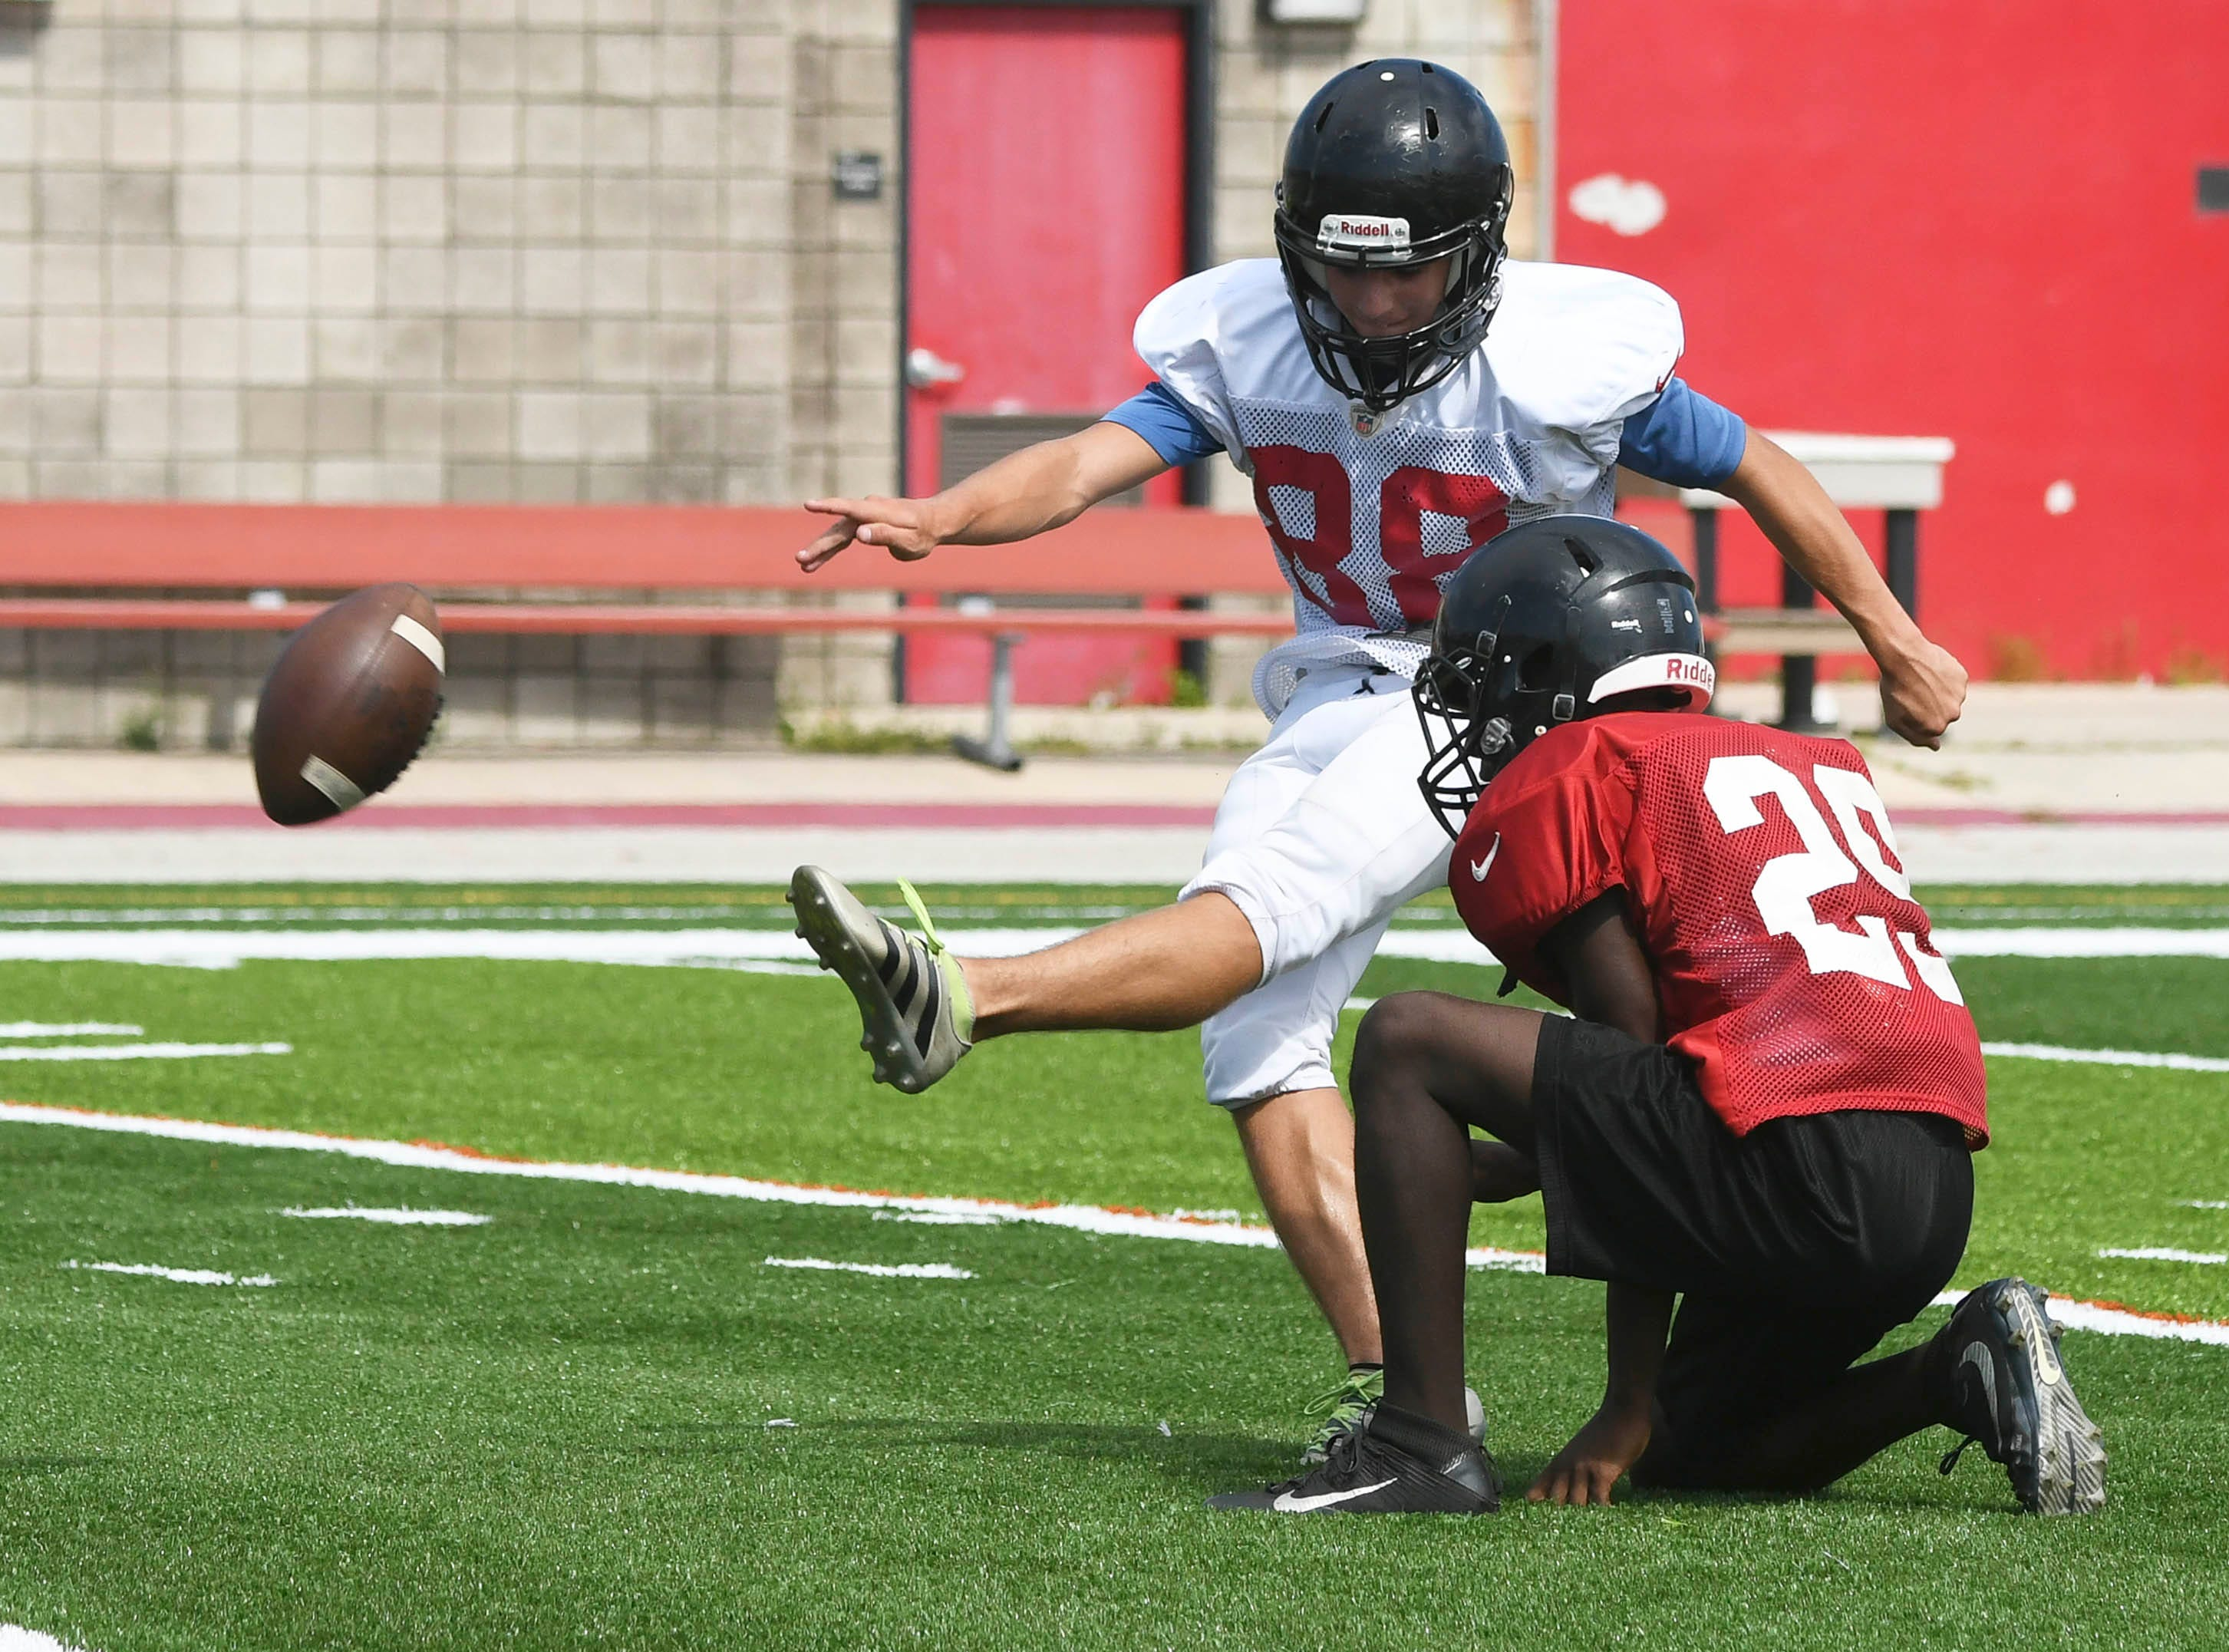 Players at Palm Bay Magnet High run through drills during practice Tuesday afternoon